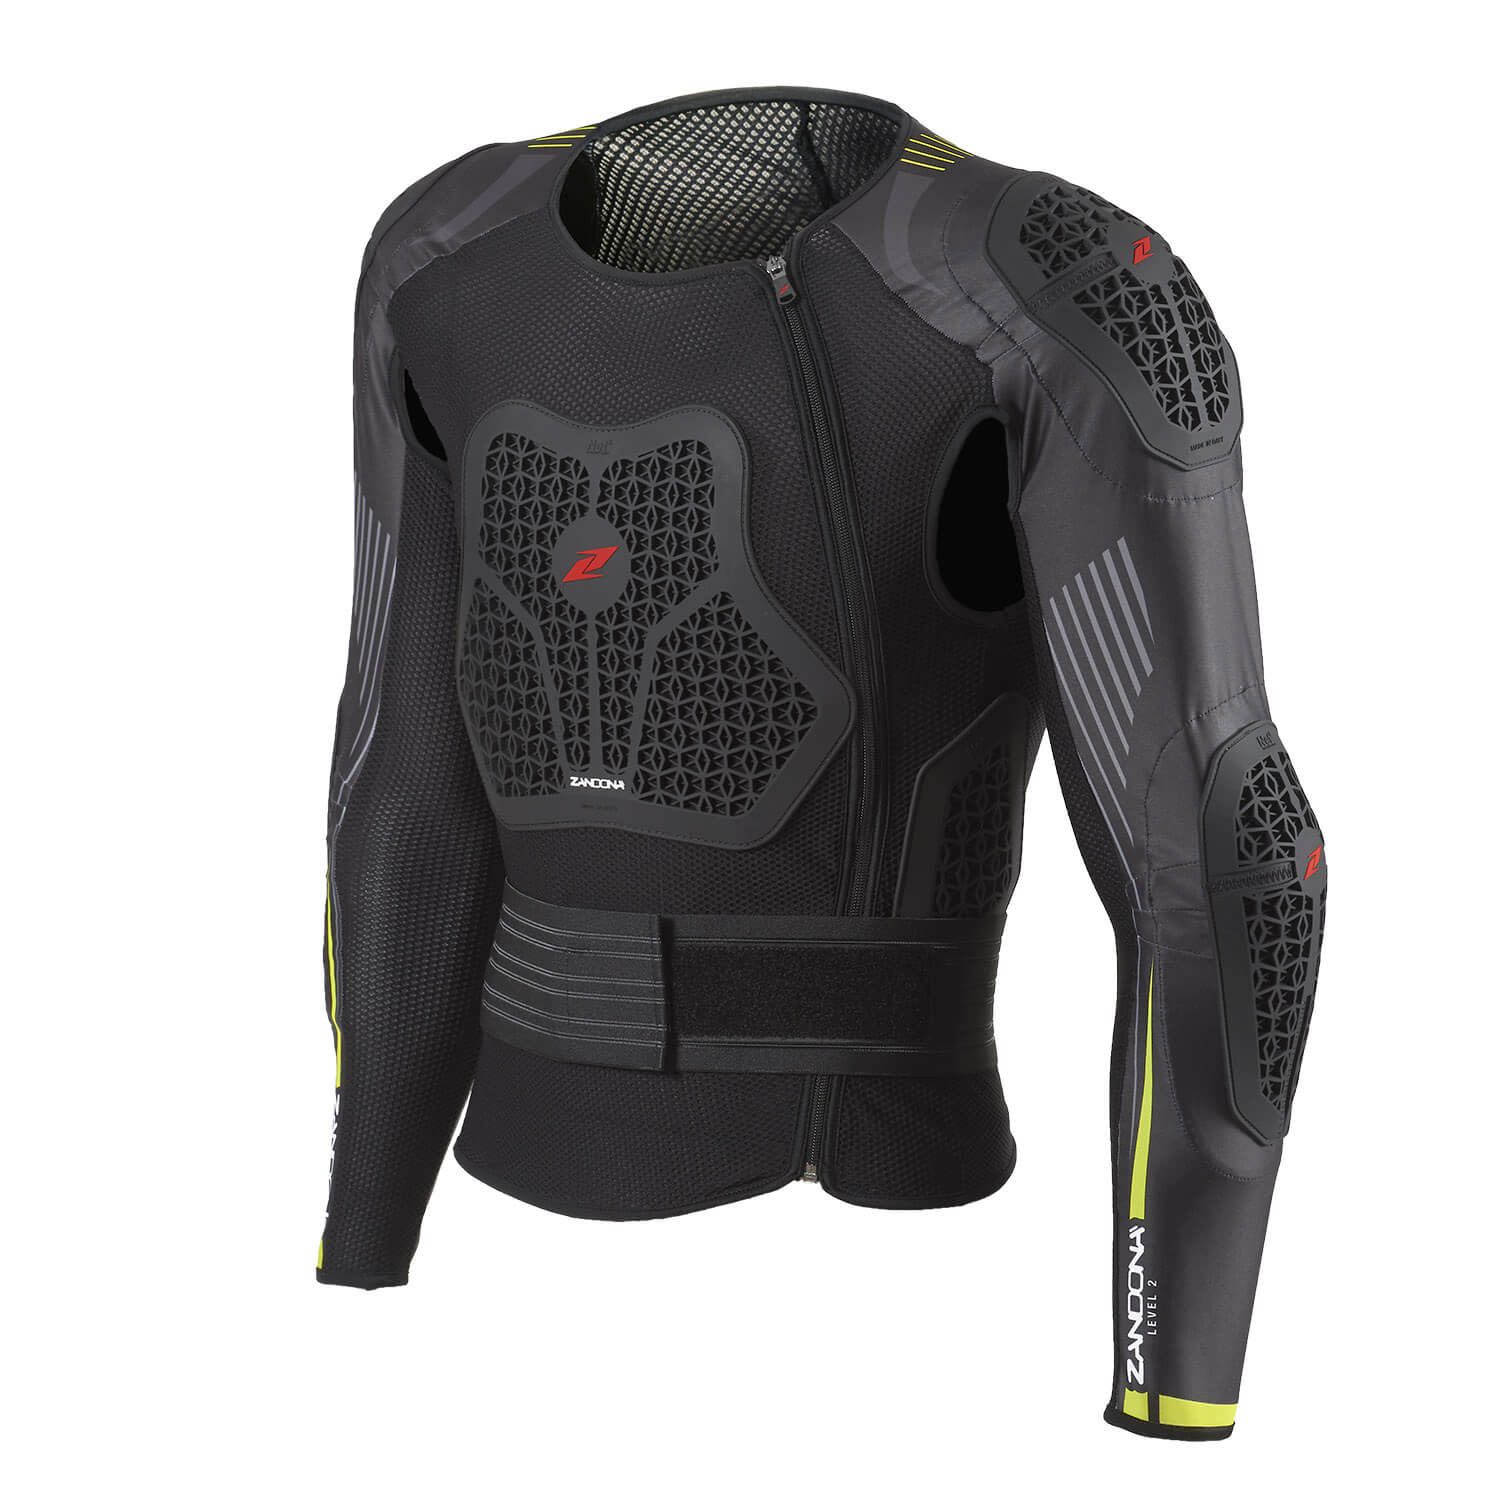 Zandona Netcube Jacket Pro Body Armour